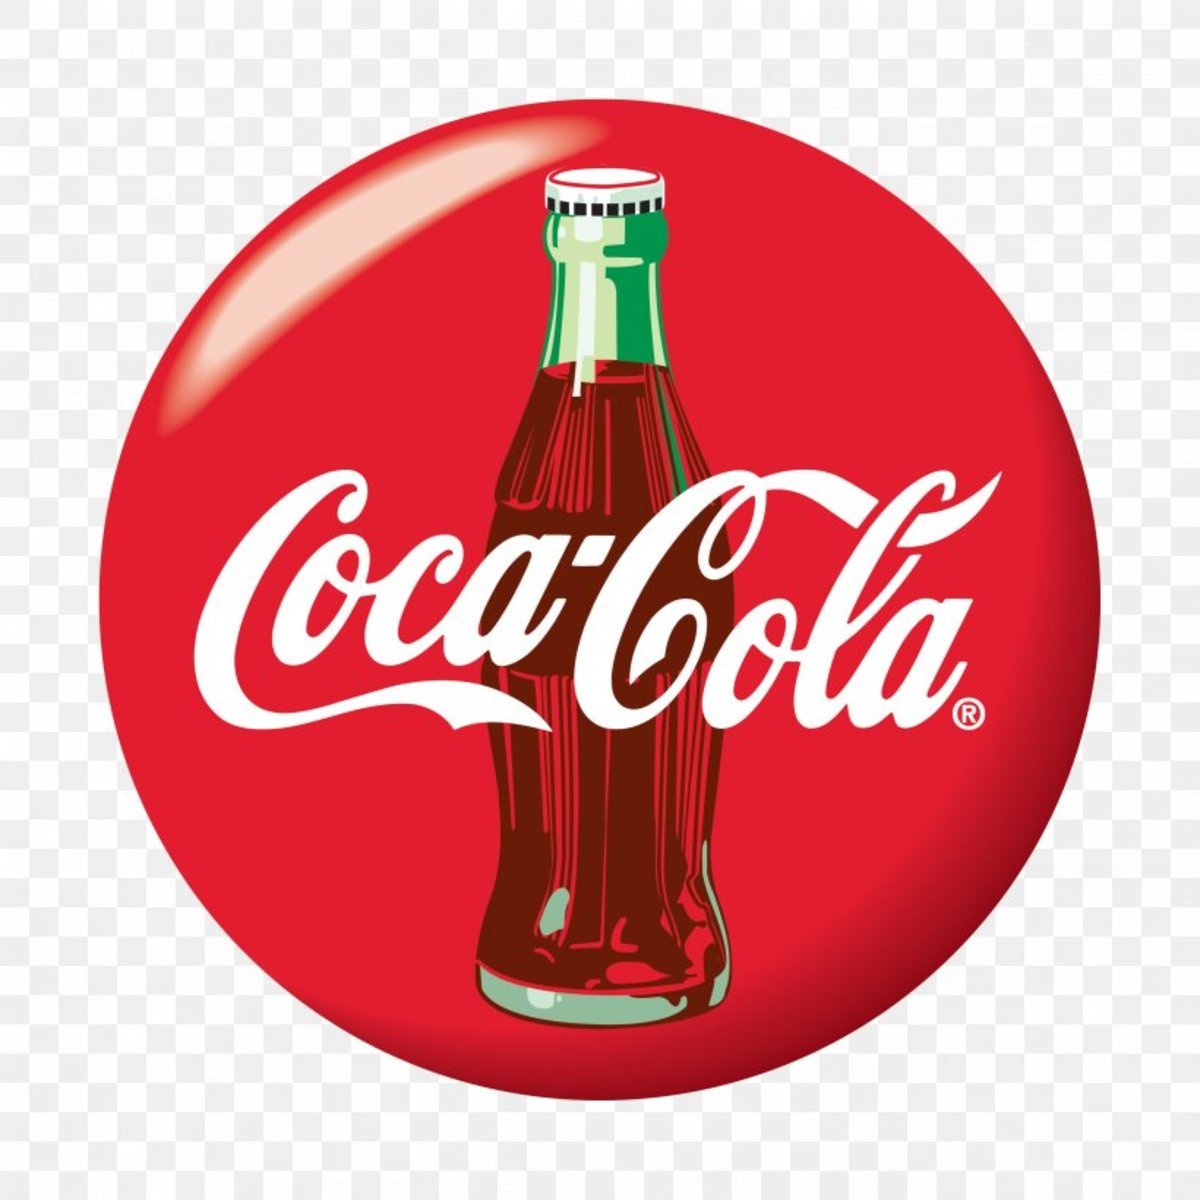 In 1953, you could buy six 6-ounce bottles of Coca-Cola for 29 cents.